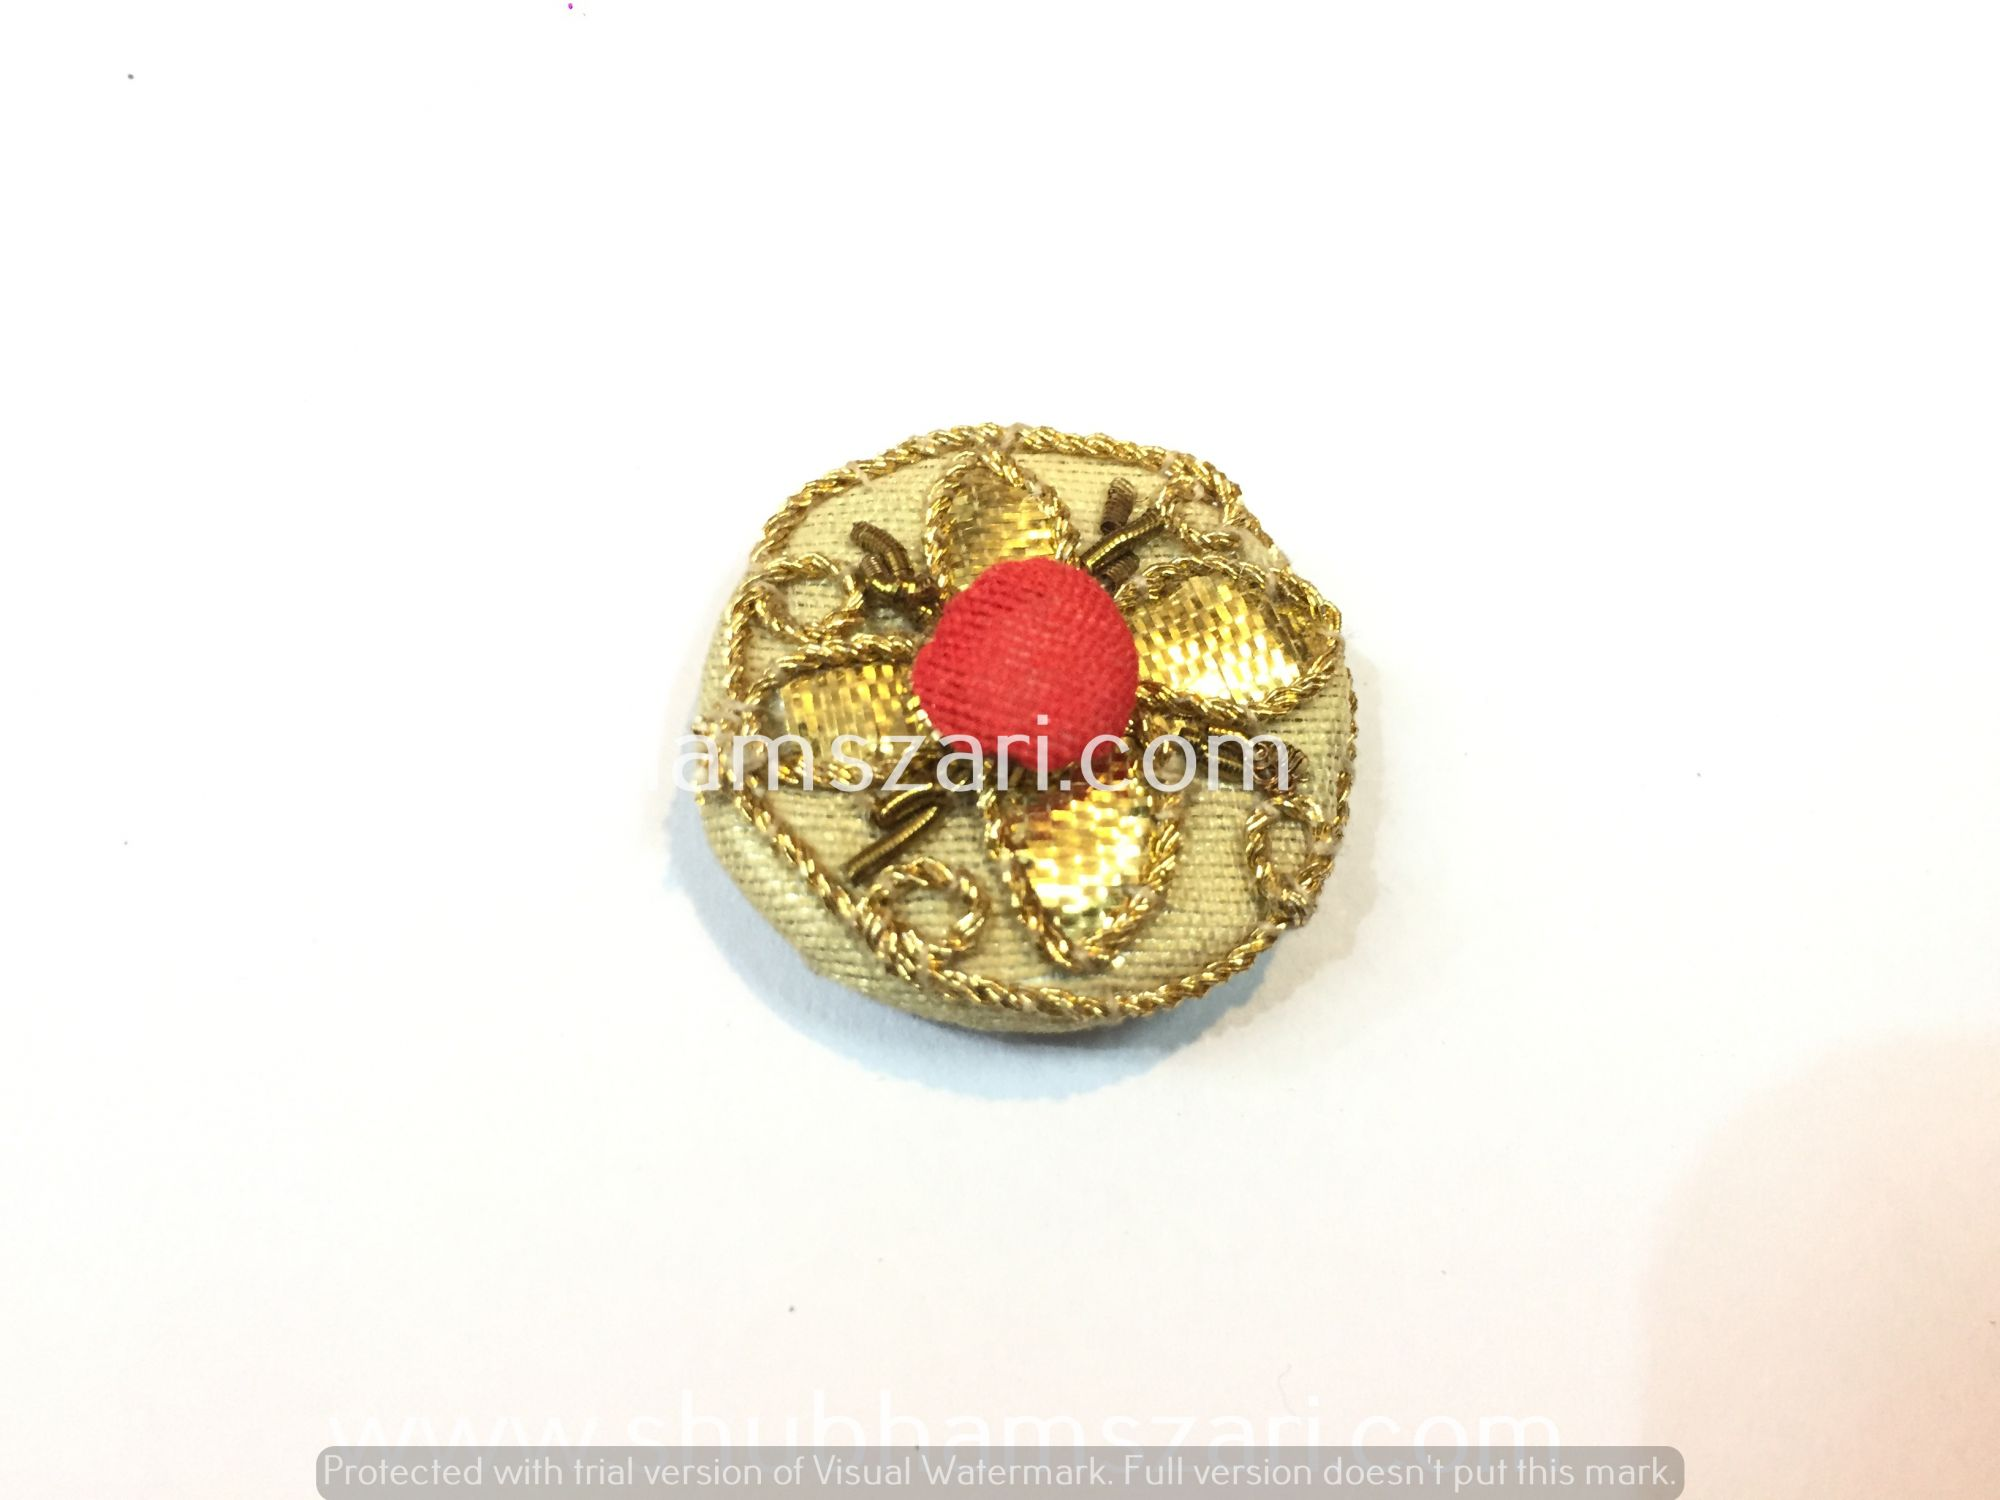 Decorative Indian Button Gota Patti Hand Work Indian Design Hand Crafted Fabric Thread Work Handmade Artwork Wedding Buttons